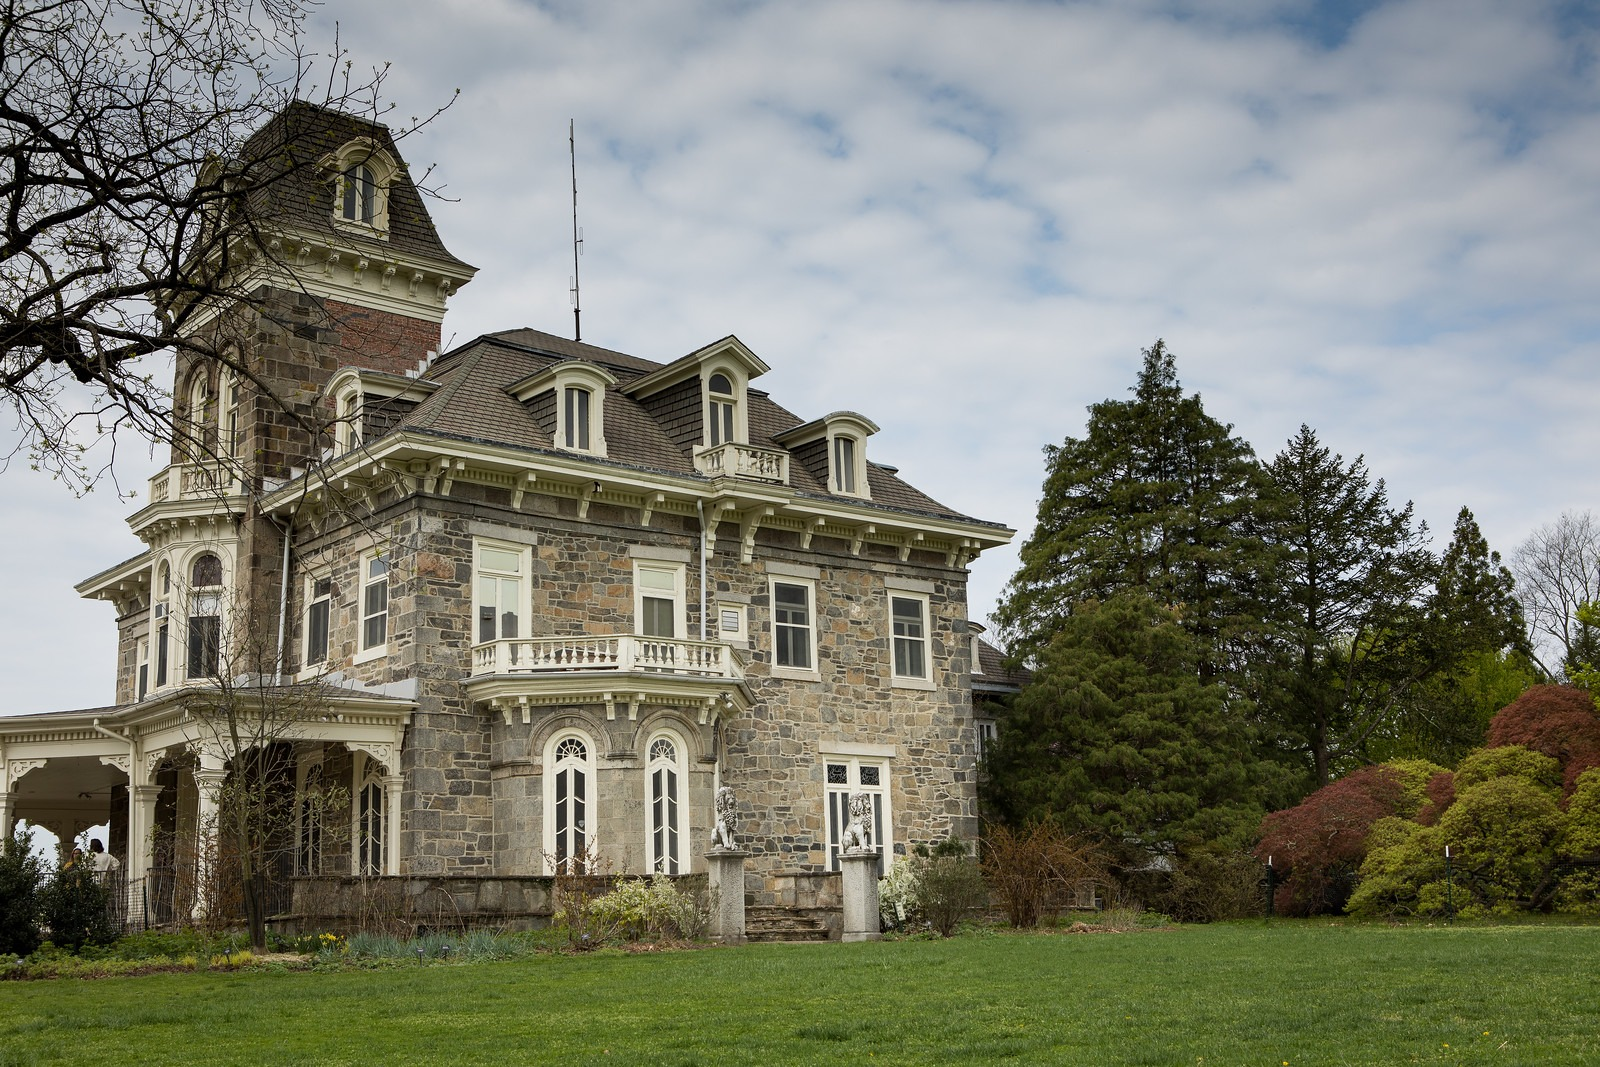 Mansion in Cylburn Arboretum